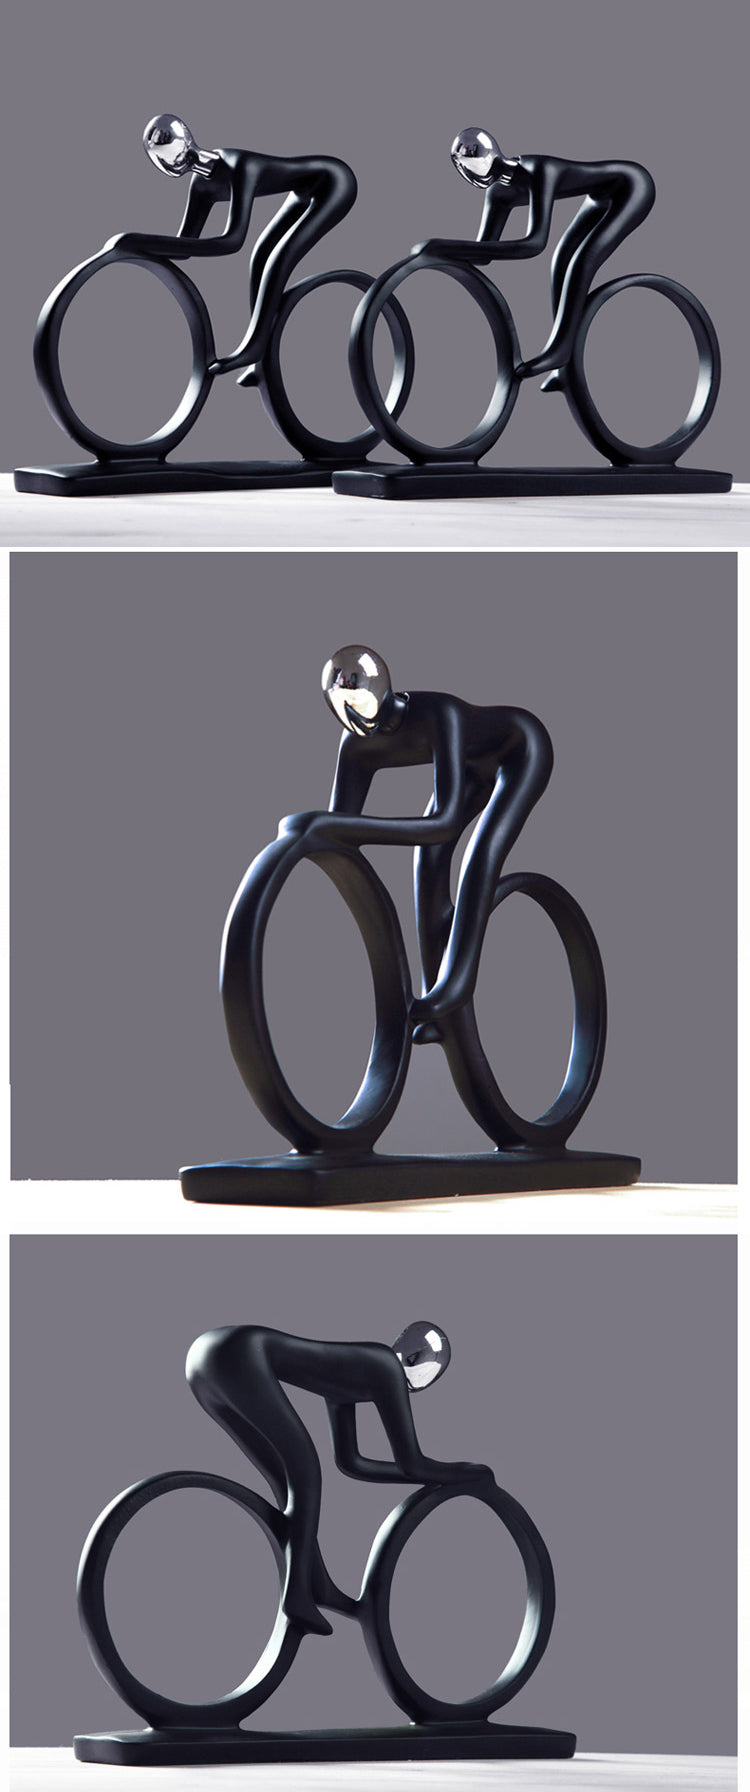 Racy Champion Cyclist Figurine Resin Statue Modern Abstract Bicycle Sculpture Athlete Art Ornament Home Decor Gift For Keen Cyclists